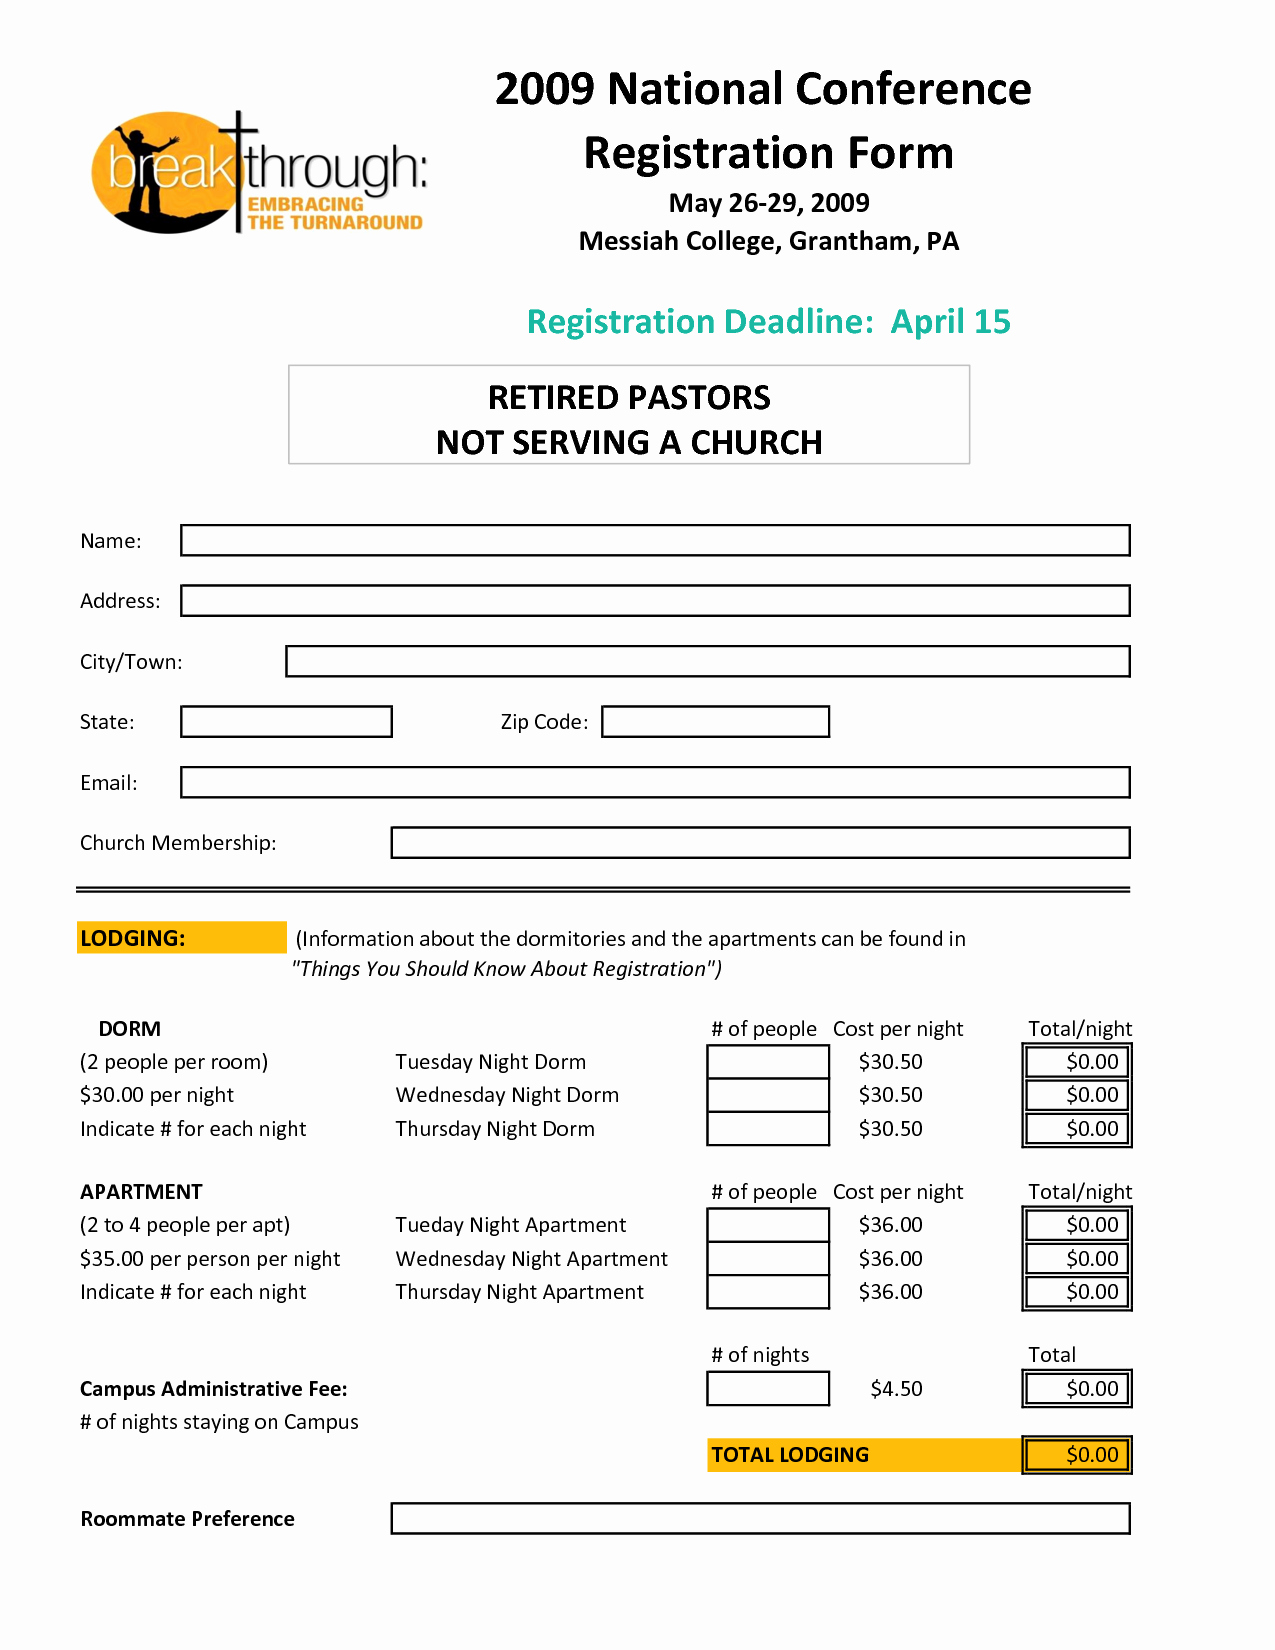 Conference Registration form Template Word Best Of Registration form Template